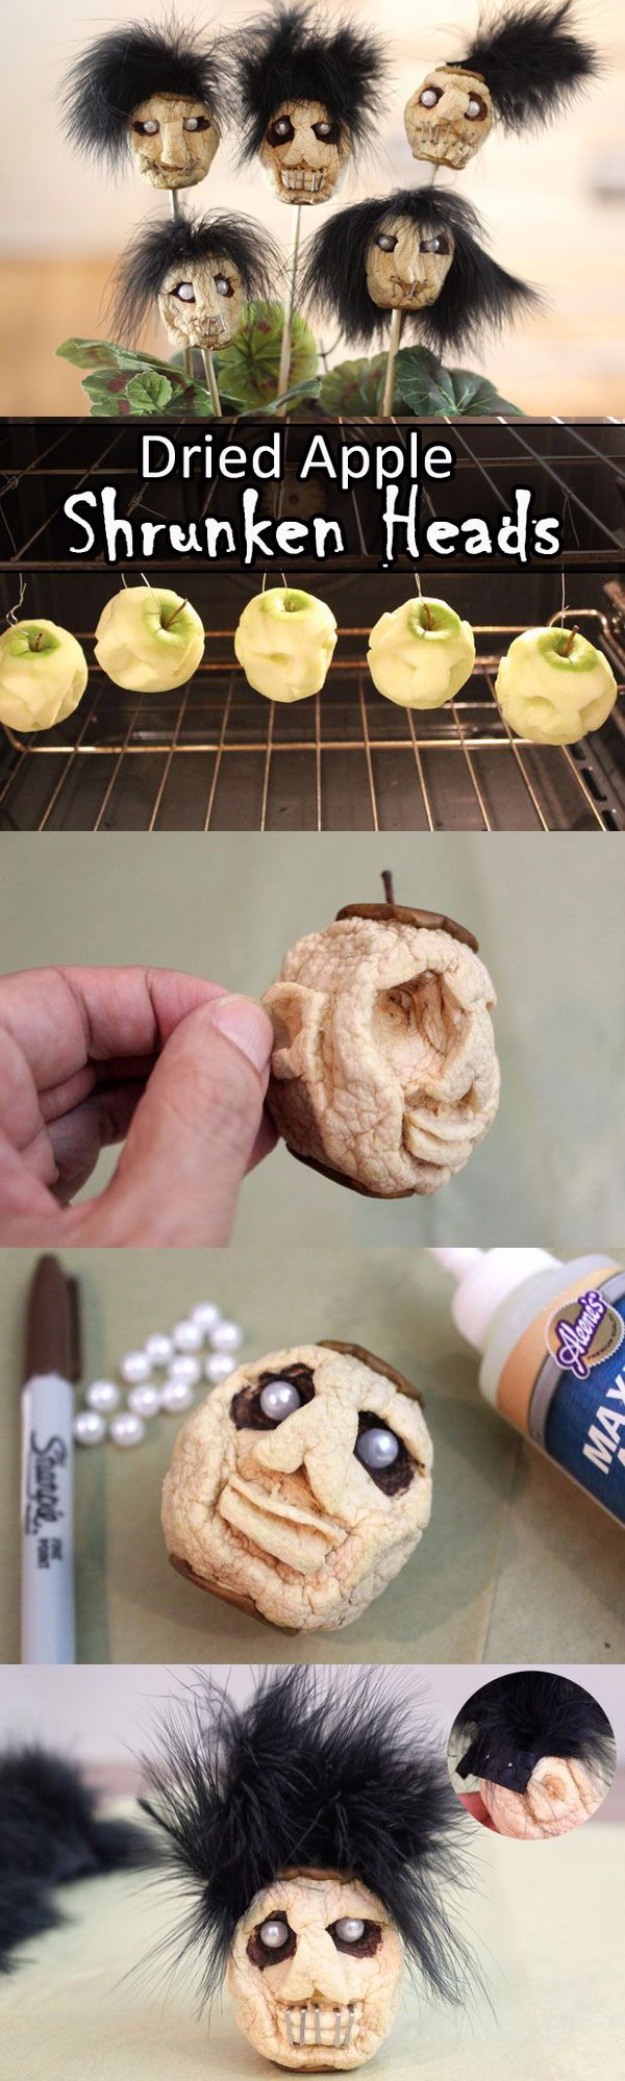 DIY Halloween Decorations - Dried Apple Shrunken Heads - Best Easy, Cheap and Quick Halloween Decor Ideas and Crafts for Inside and Outside Your Home - Scary, Creepy Cute and Fun Outdoor Project Tutorials